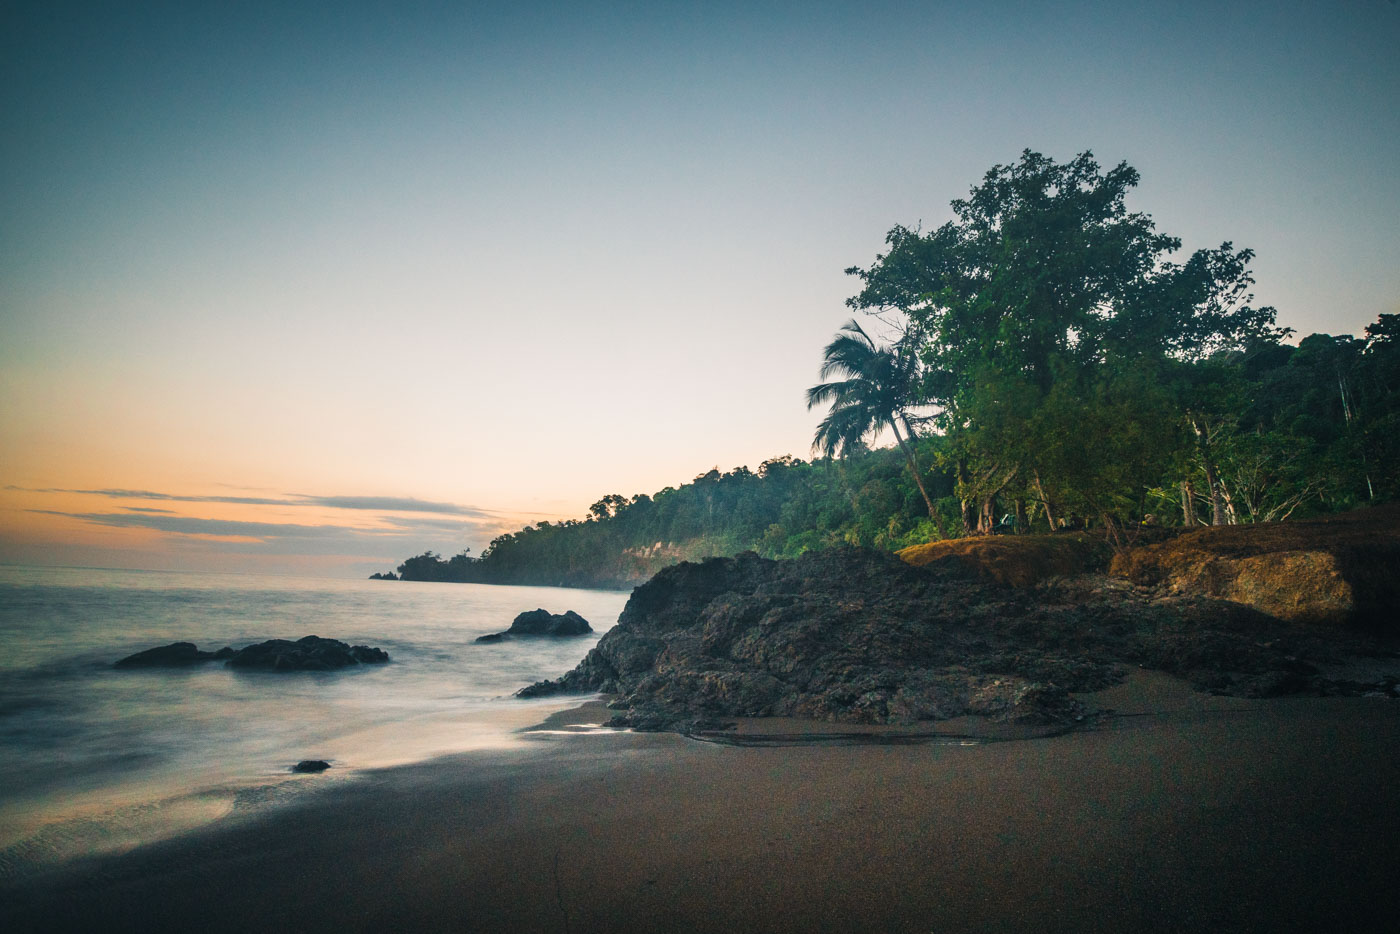 Sunrise at San Pedrillo, Corcovado National Park